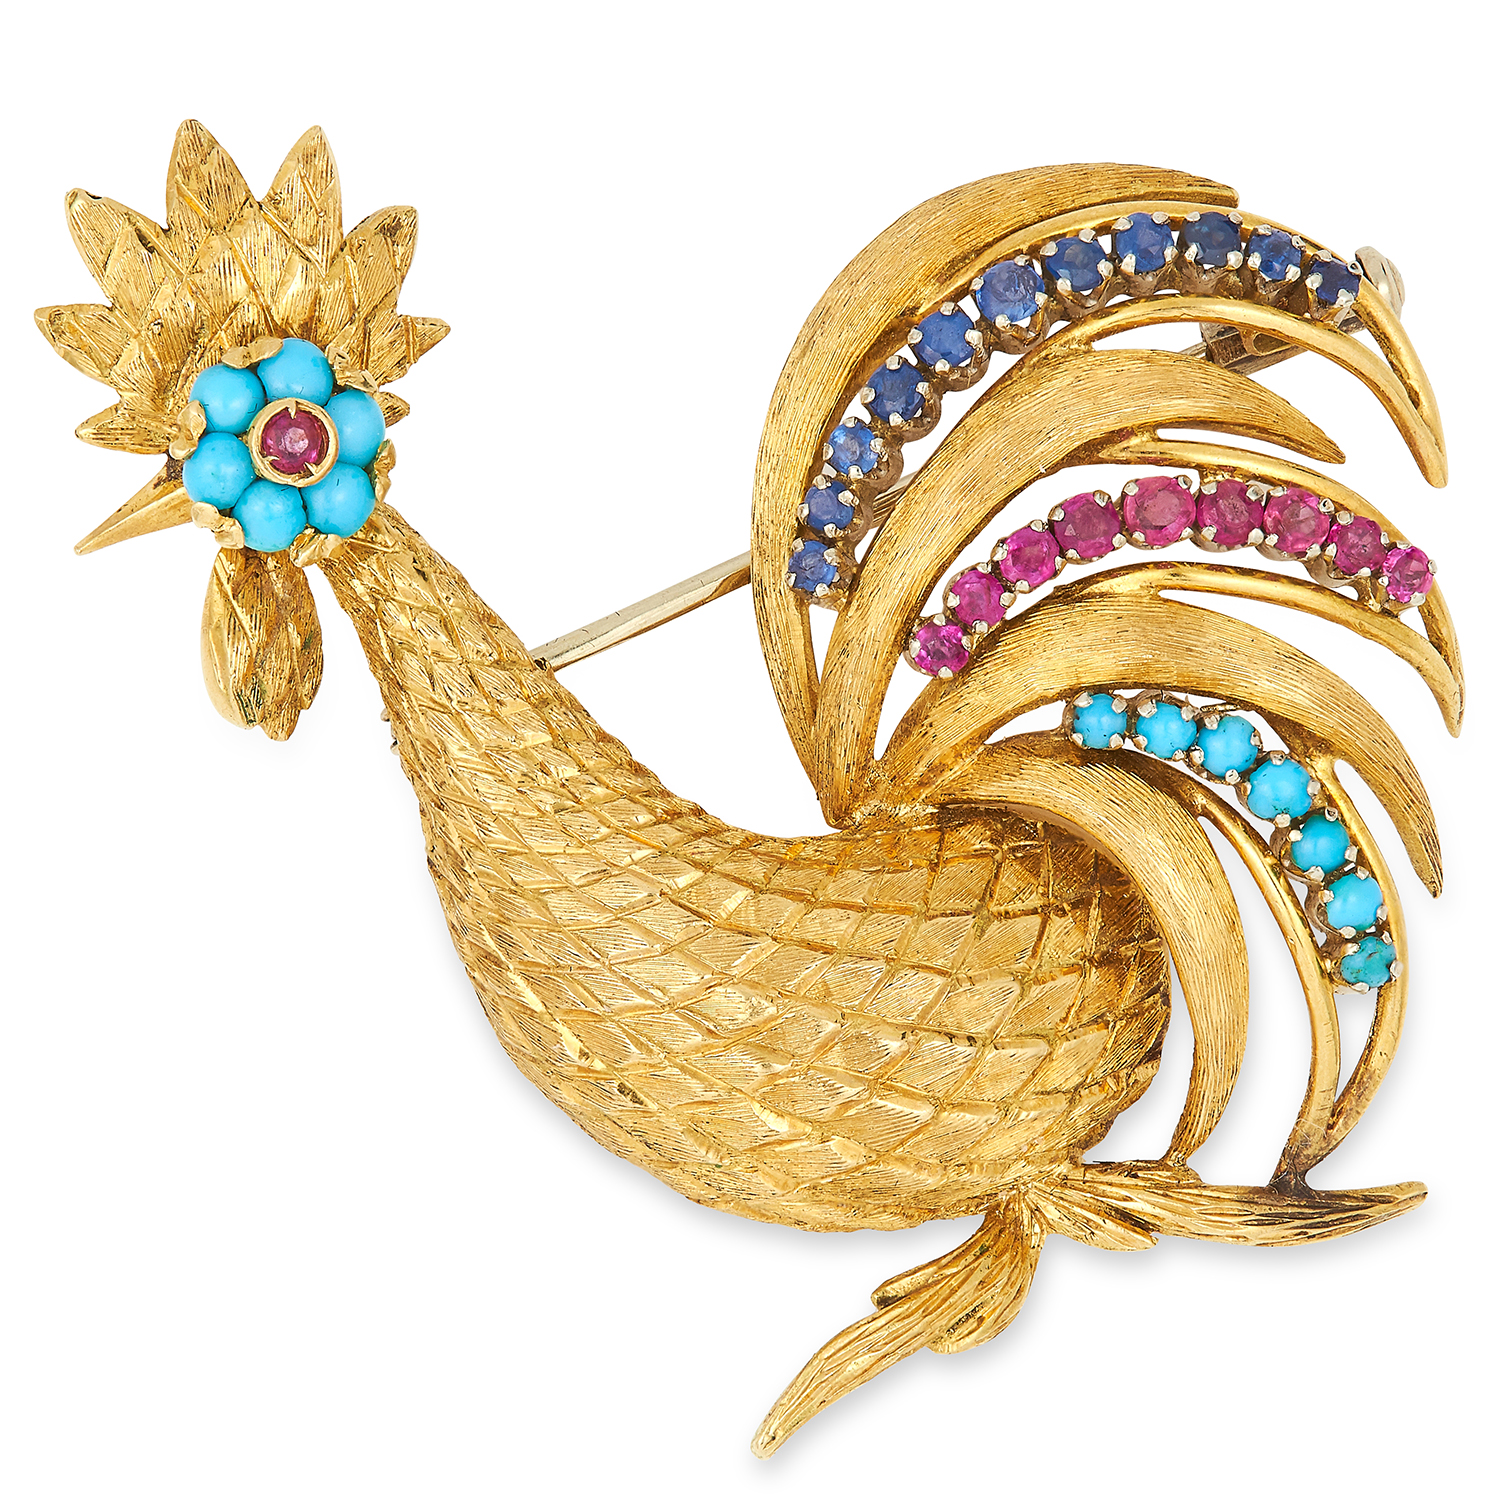 VINTAGE GEMSET COCKEREL BROOCH, set with cabochon turquoise, round cut rubies and round cut